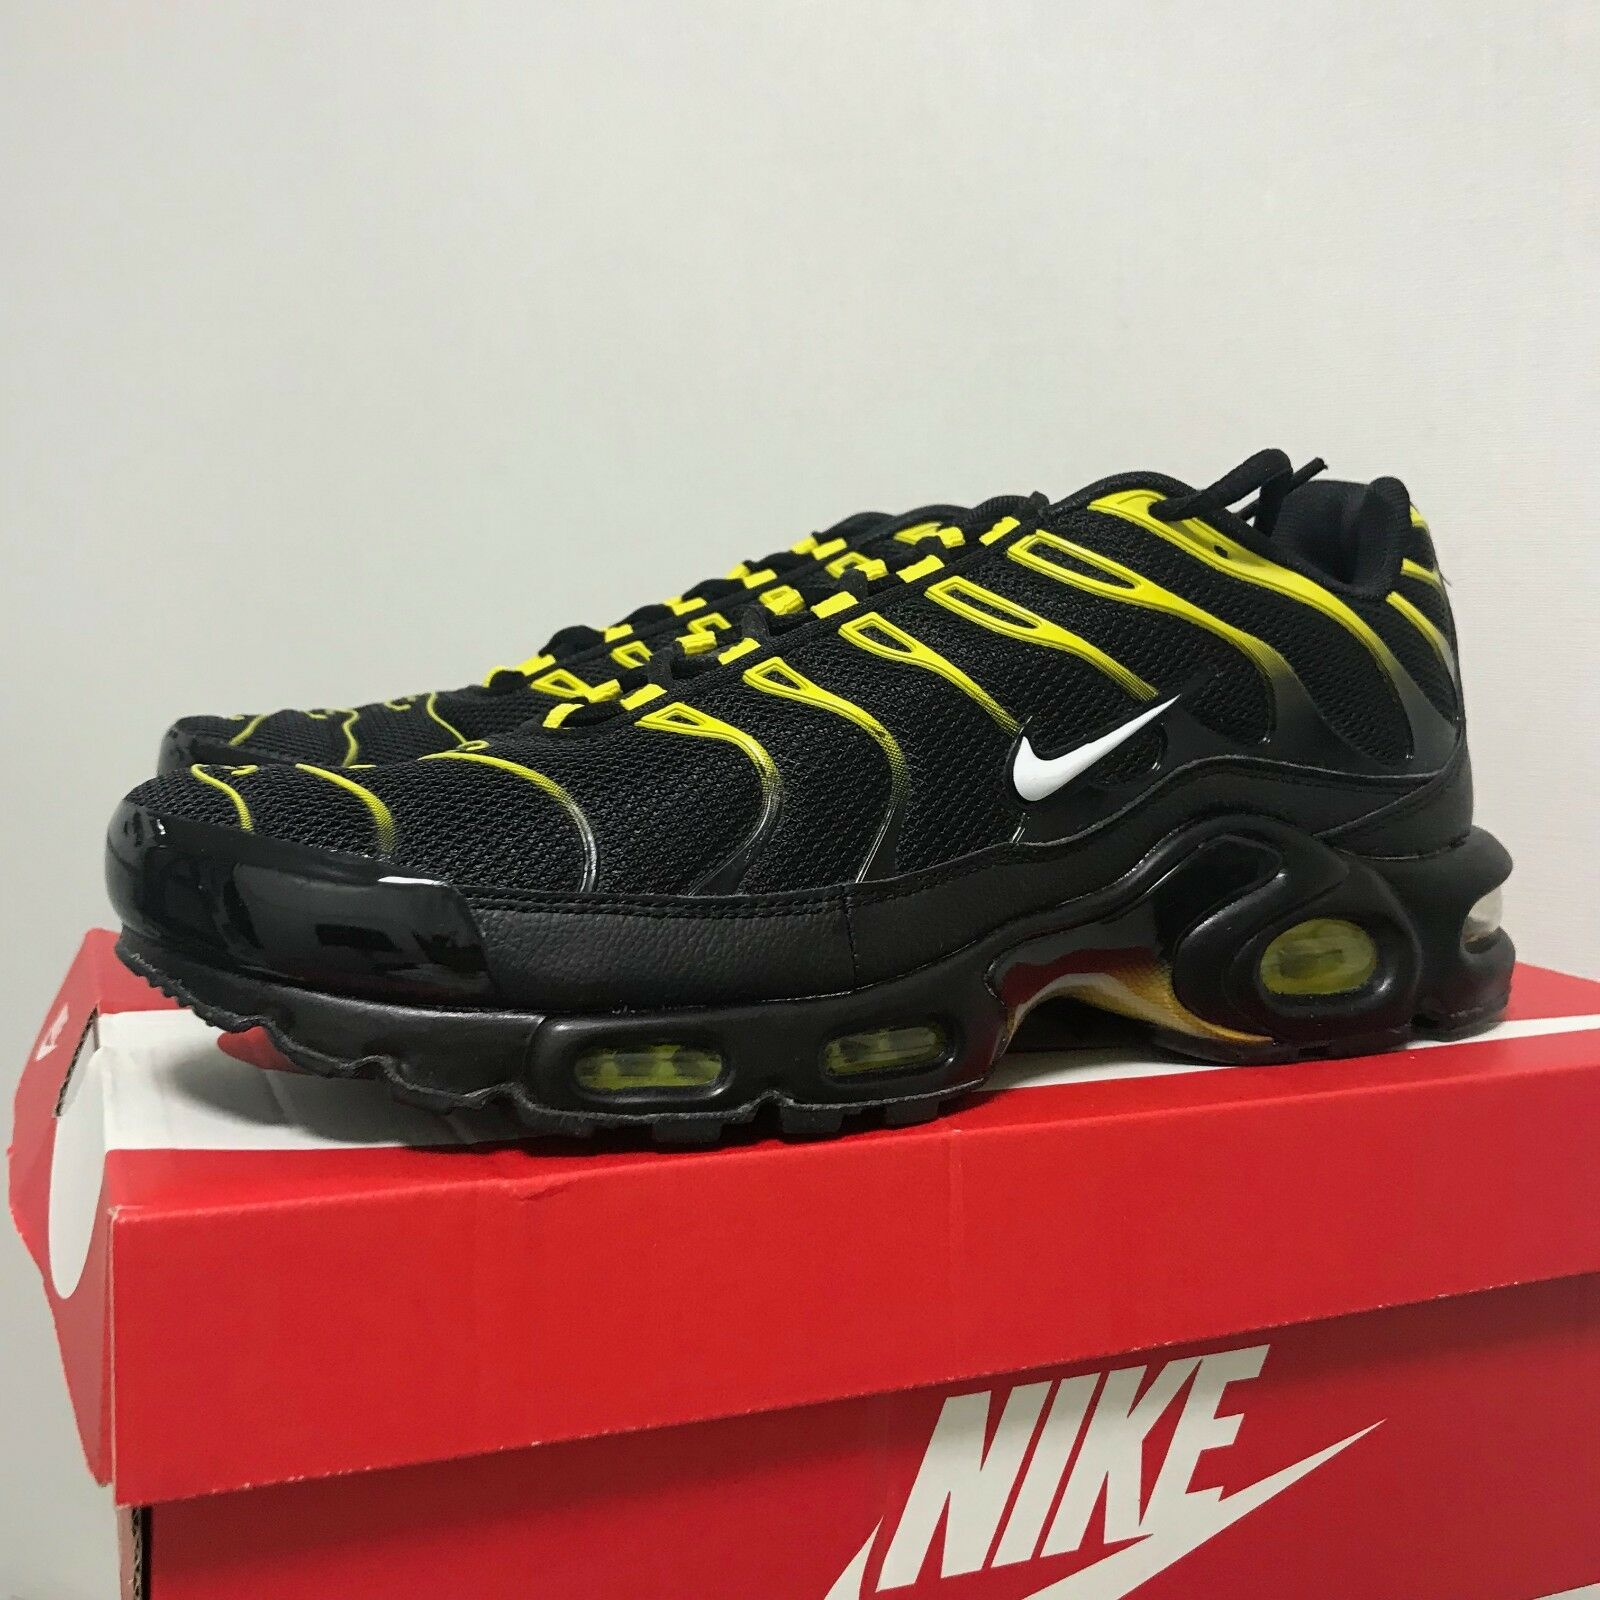 Nike Air Max Plus 1Tn Sneakers shoes Black Yellow 852630-020 Sz5-13 Limited